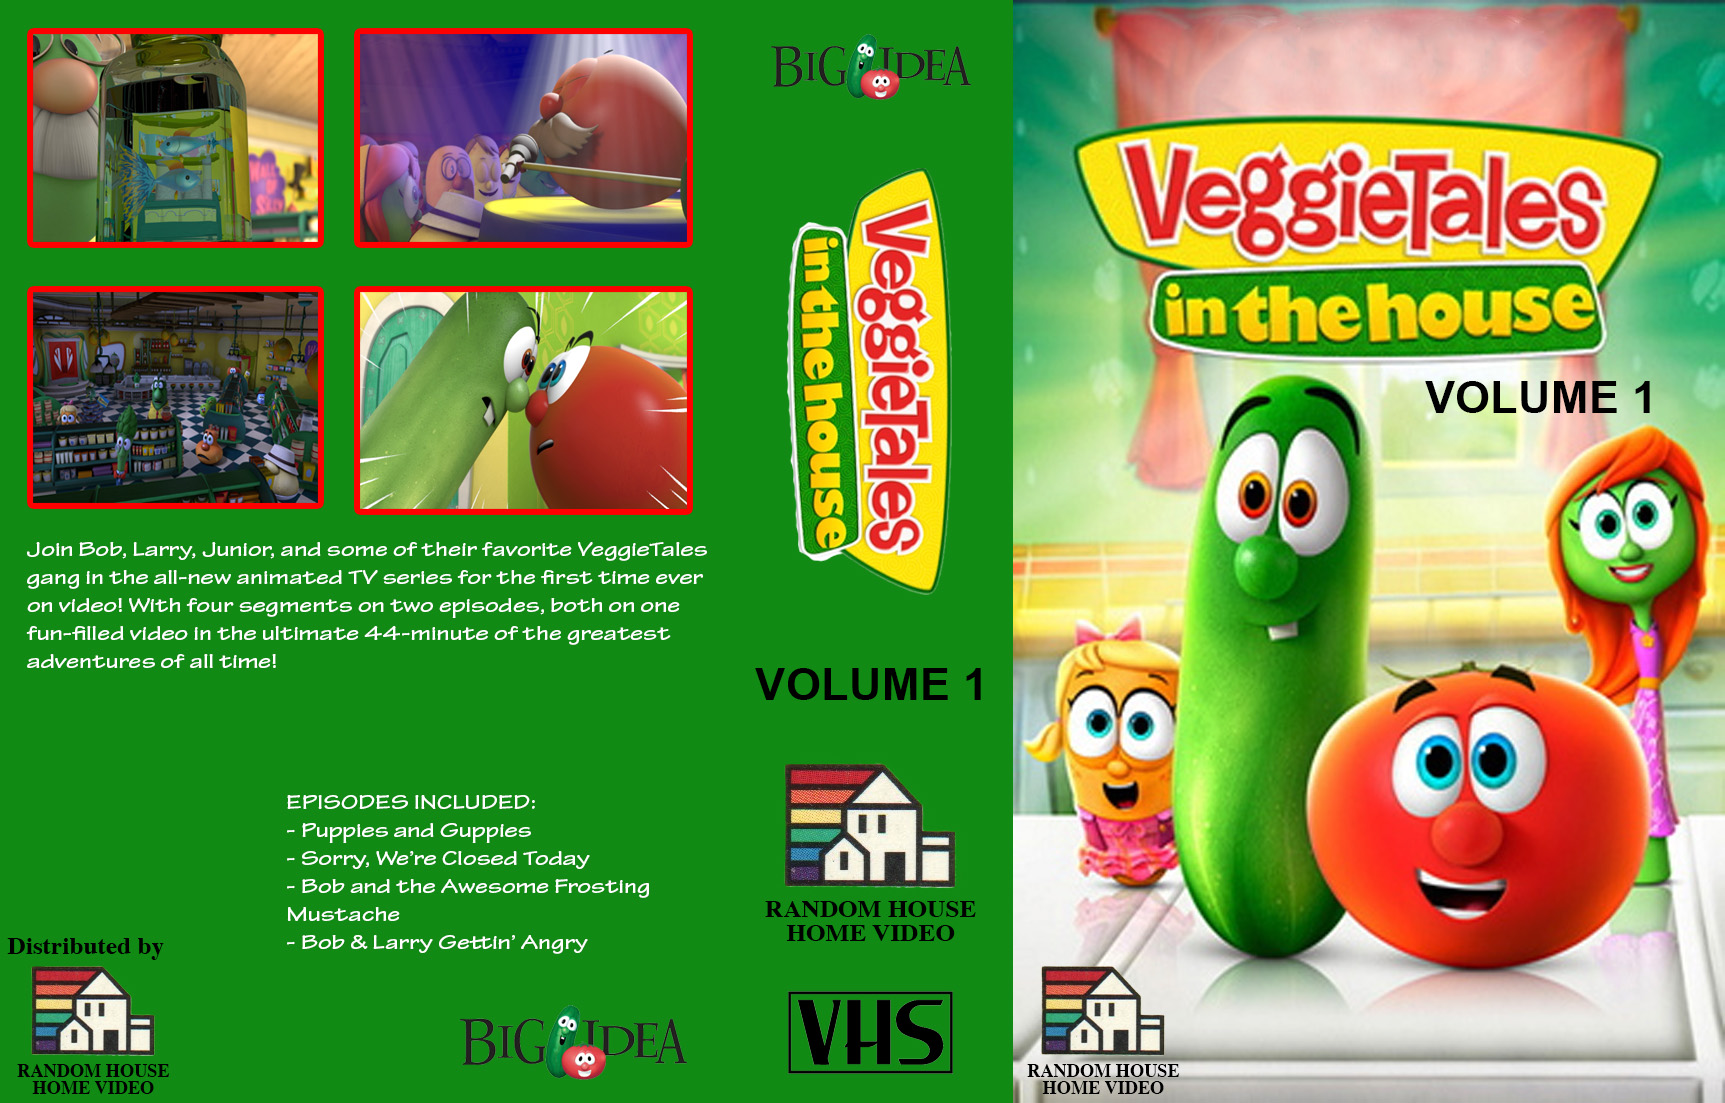 Veggietales All the Shows 2 Movie free download HD 720p